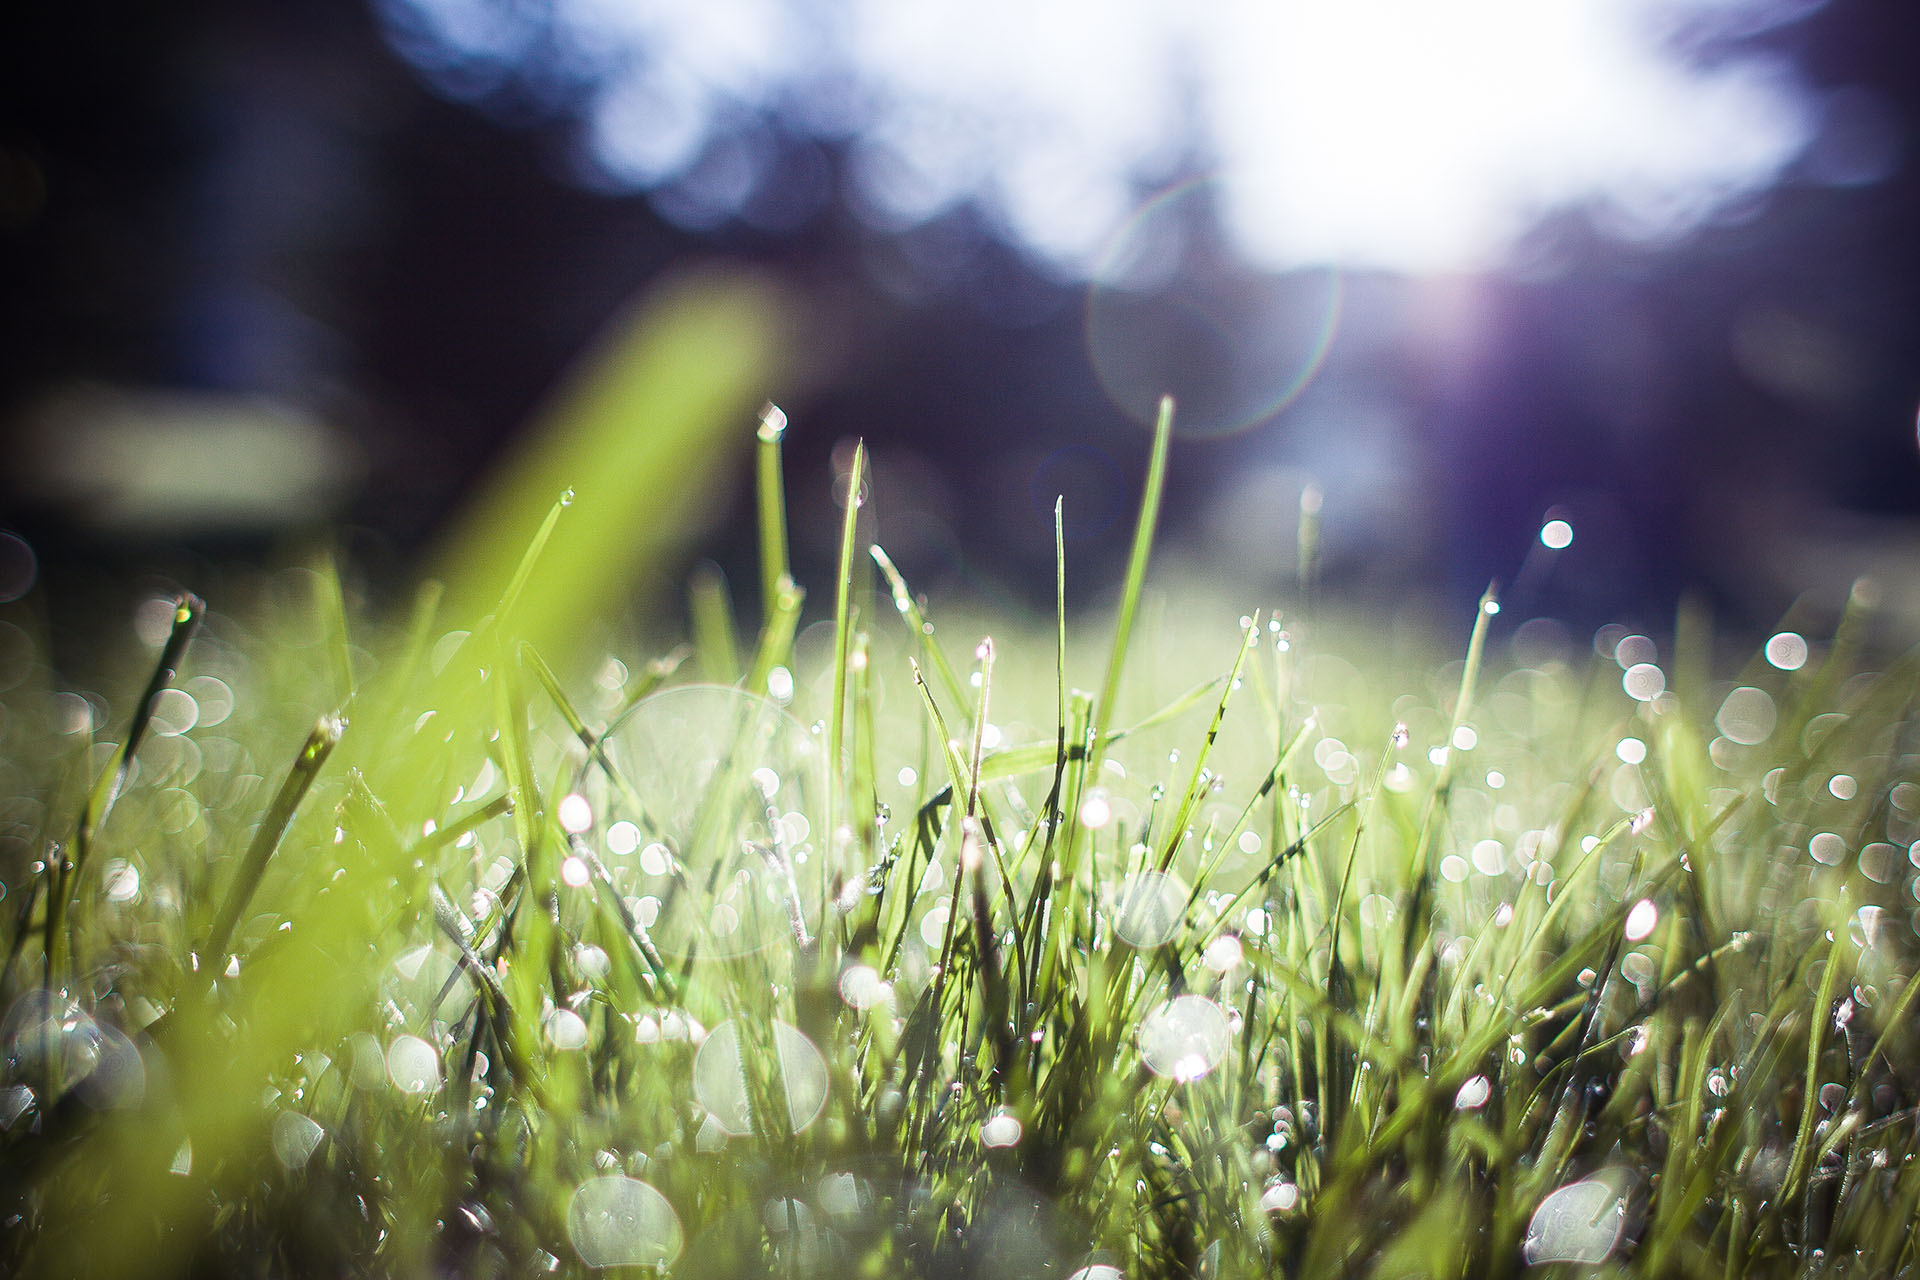 Grass - background image